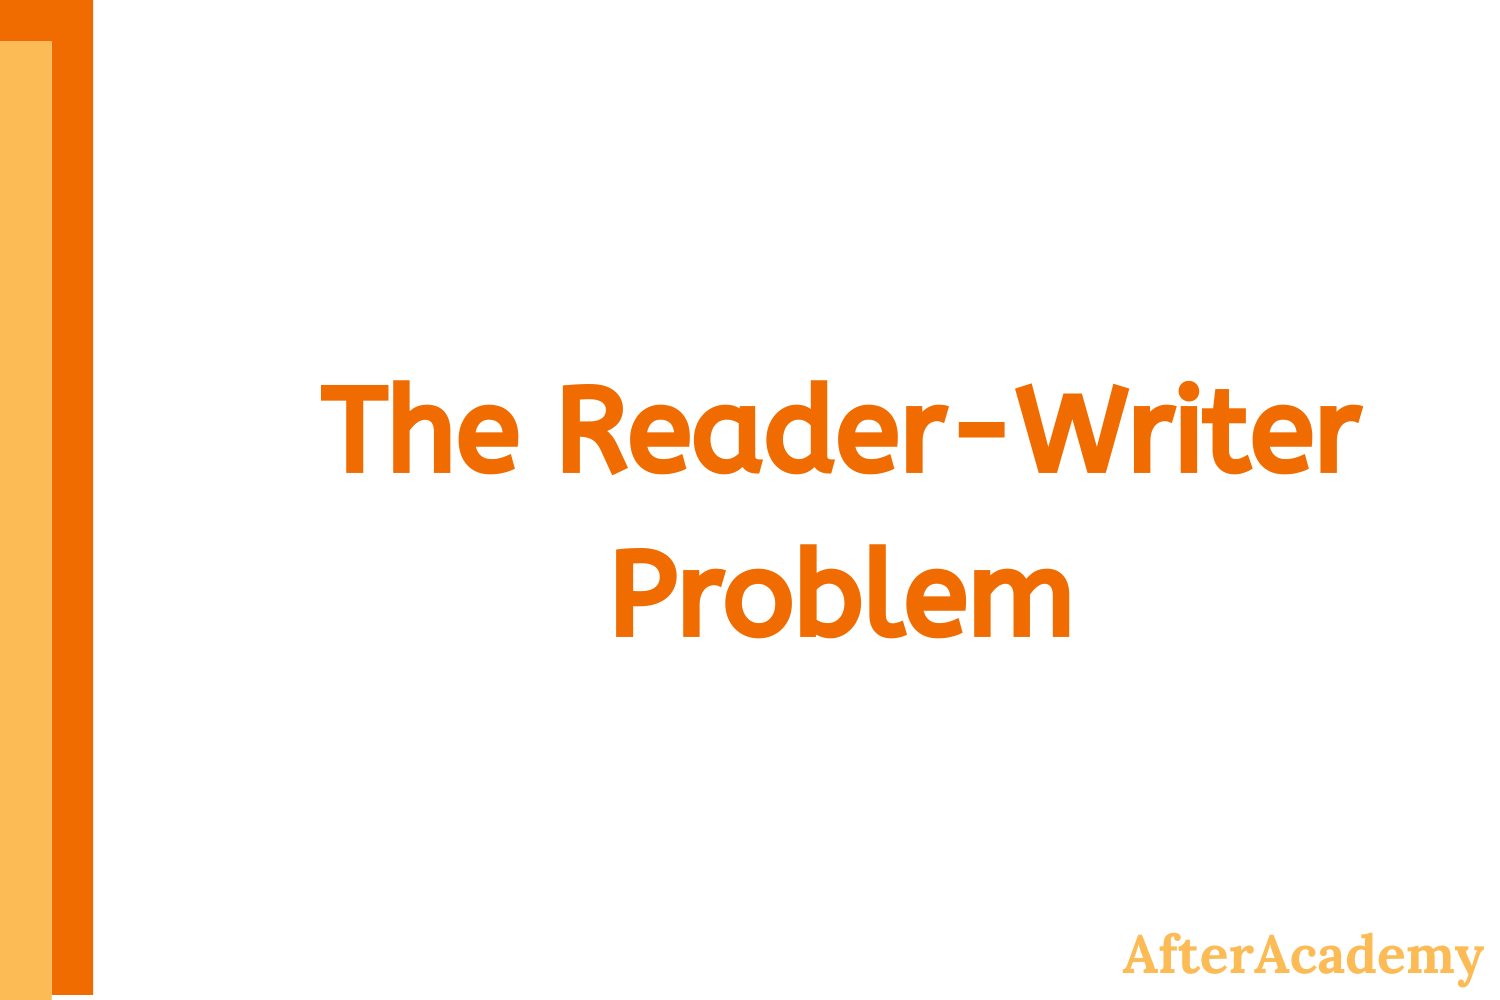 The Reader-Writer Problem in Operating System